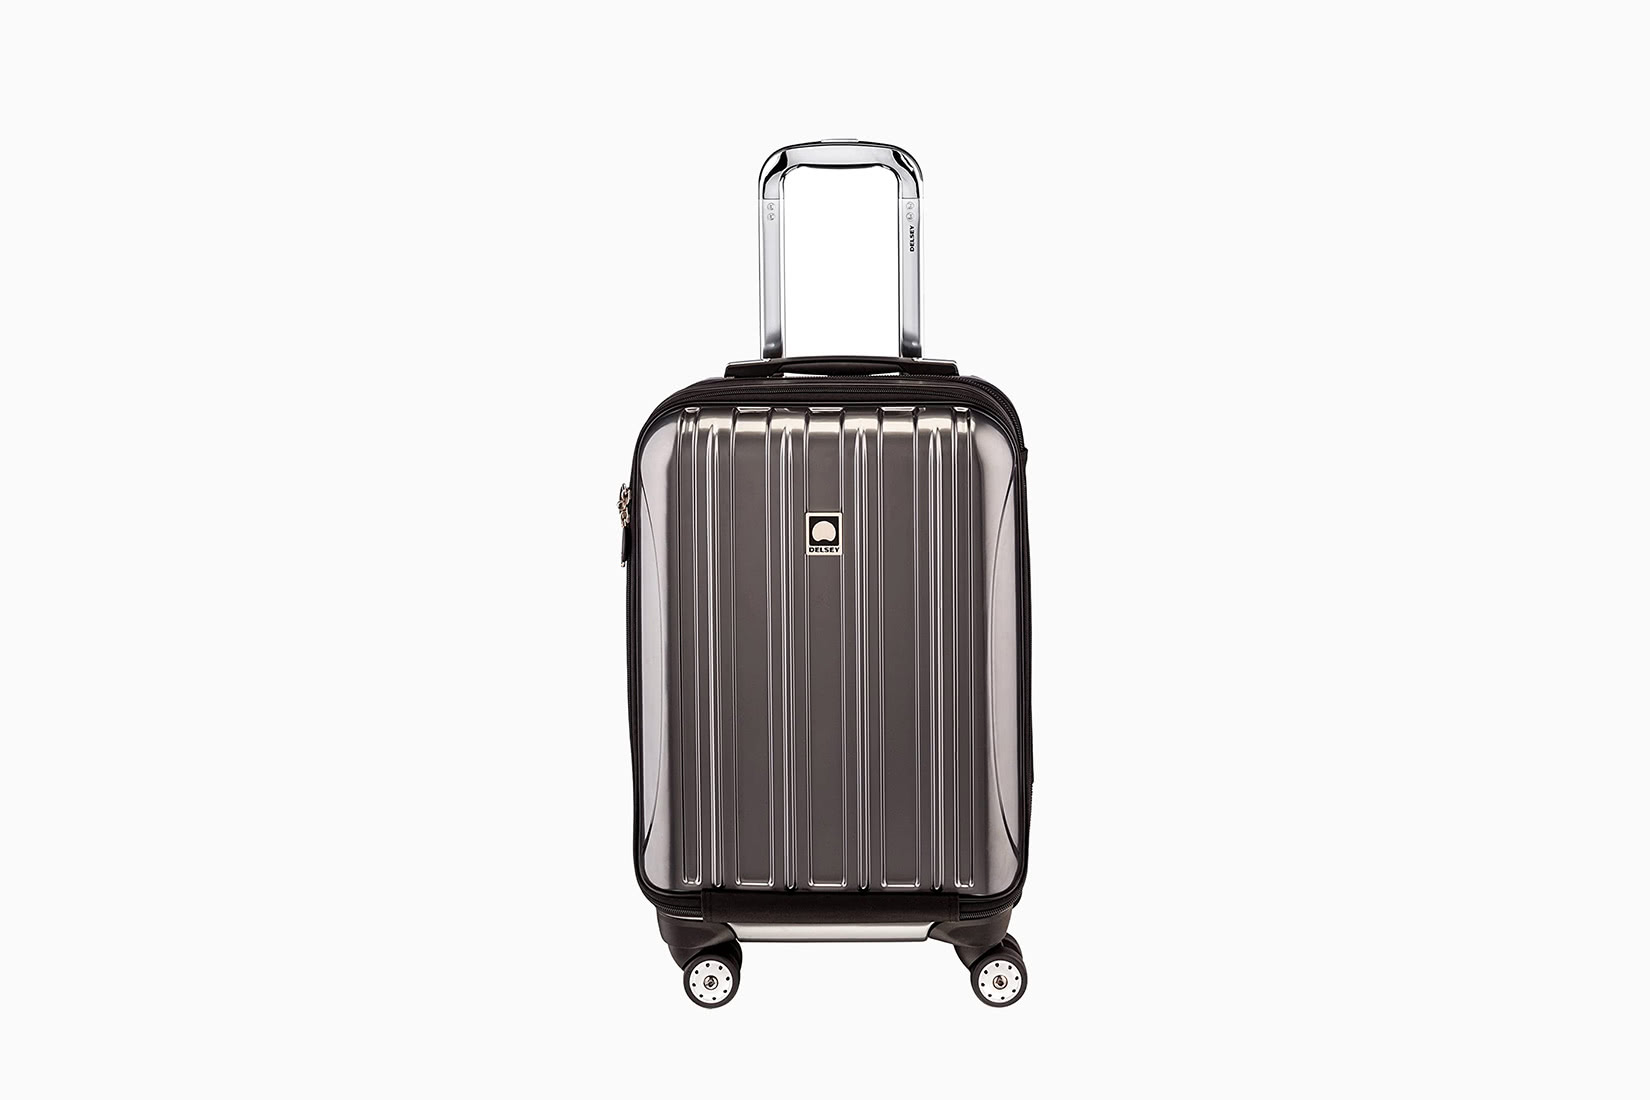 best carry-on luggage travel delsey paris helium aero europe - Luxe Digital